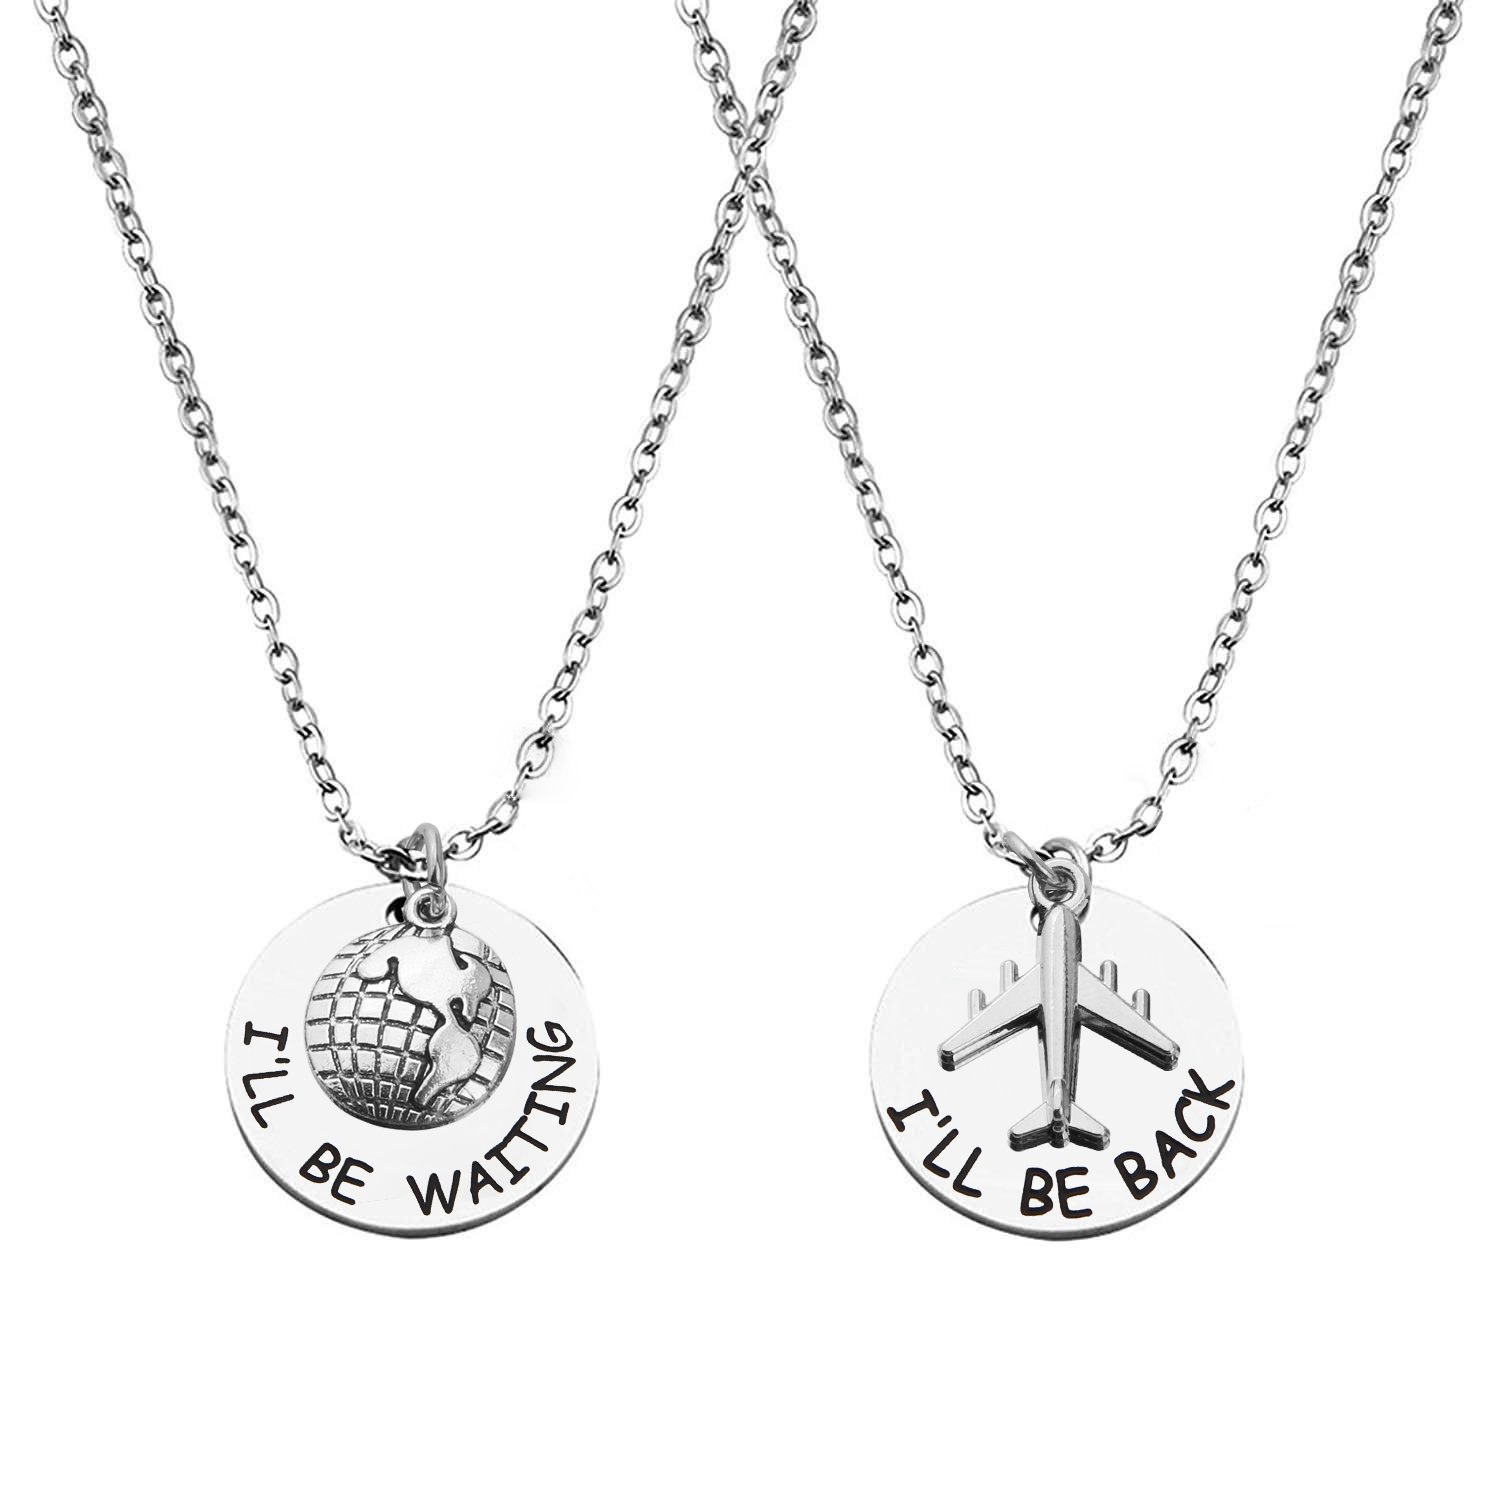 MAOFAED Long Distance Couples Gift Friendship Gift I'll Be Back I'll Be Waiting LDRSHIP Necklace Sets for 2 (I'll be back necklace set)